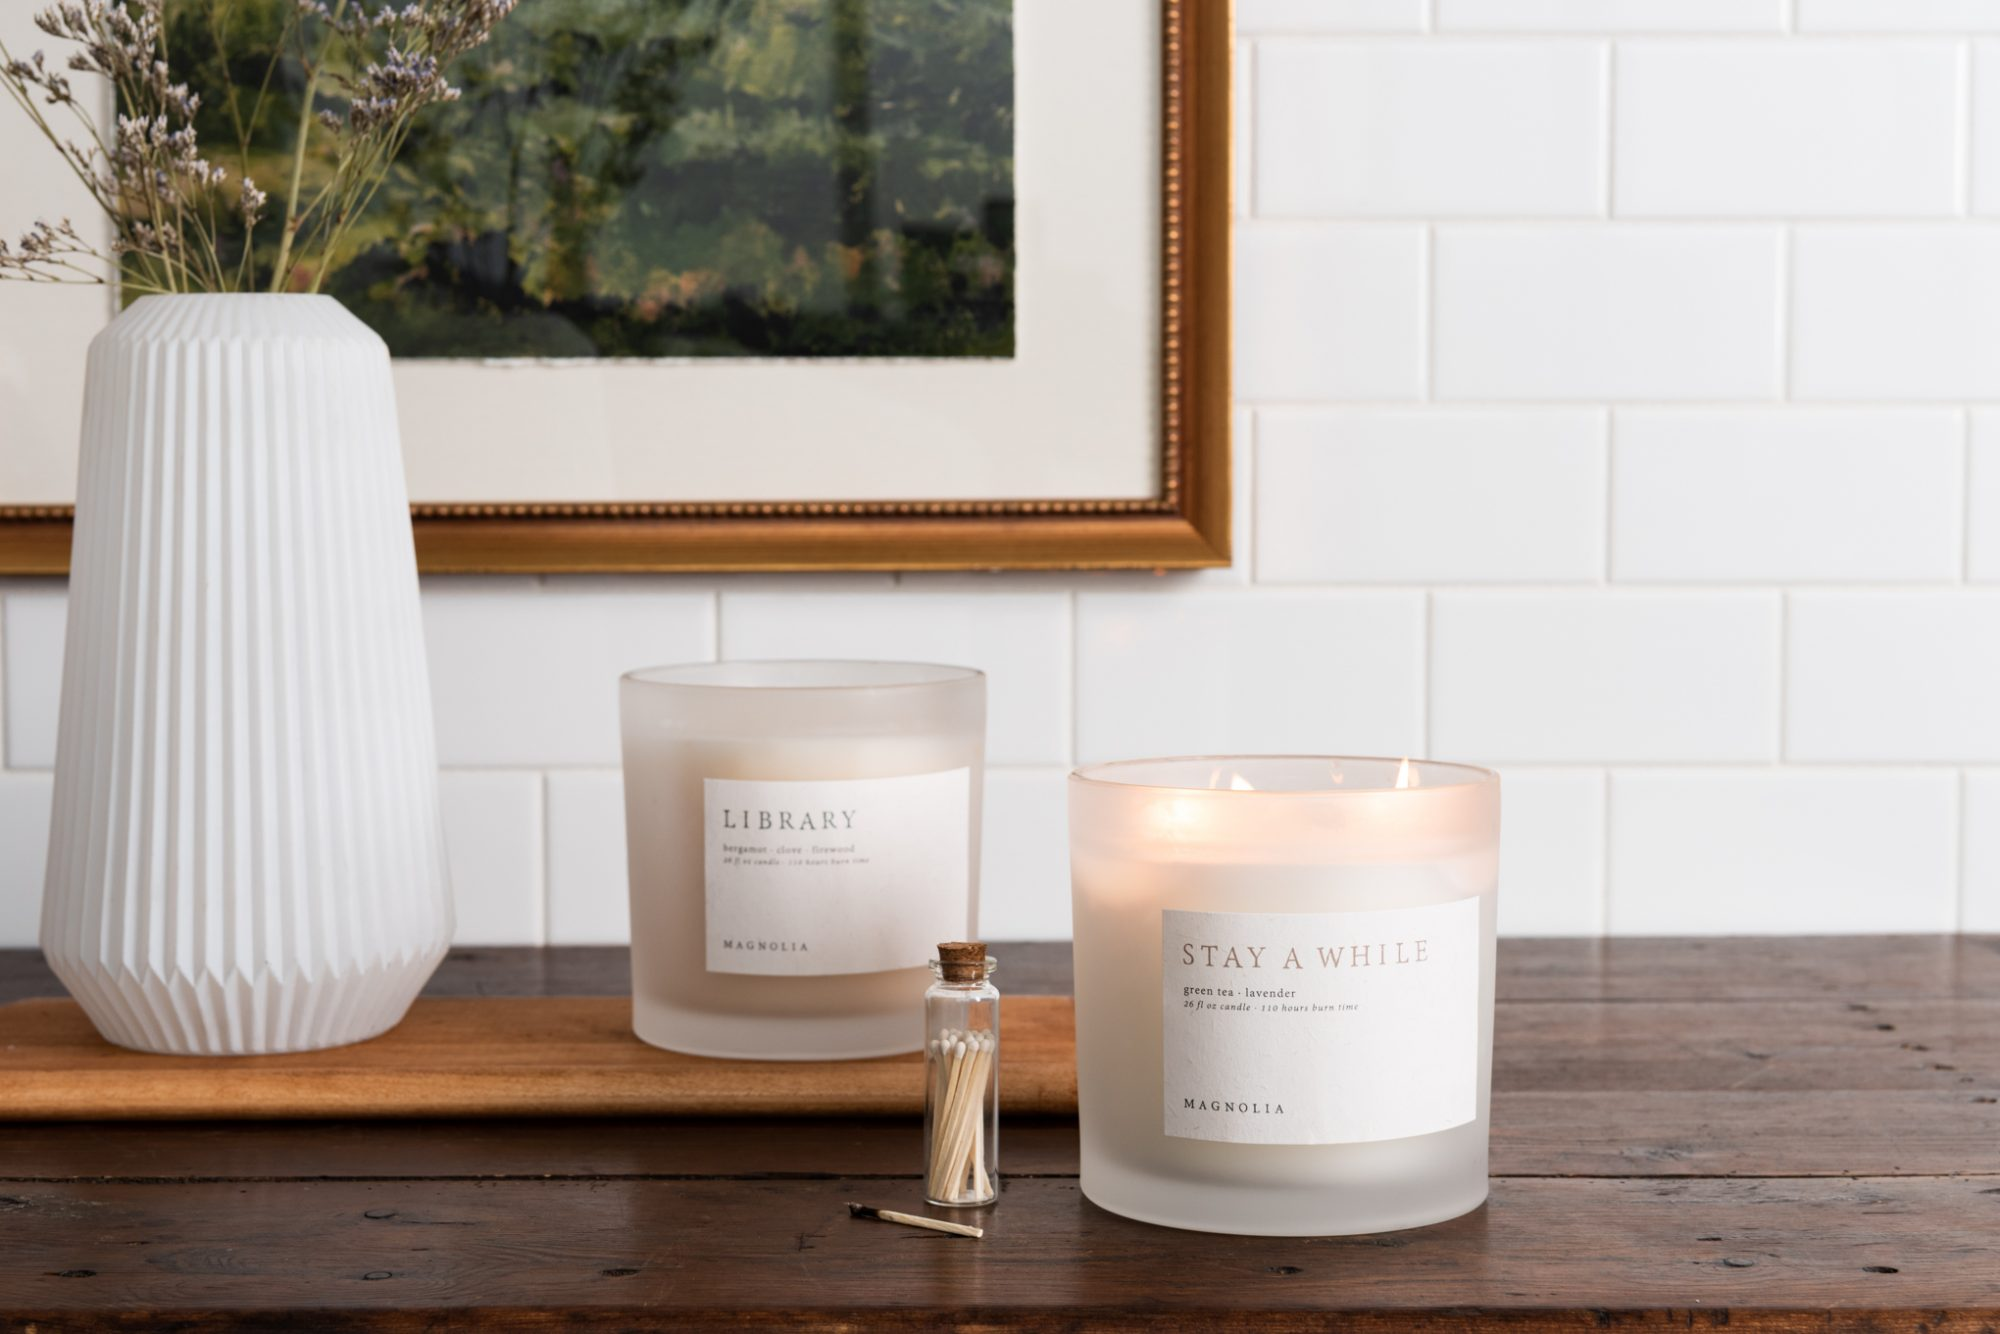 Magnolia Candle Subscription Stay a While and Library